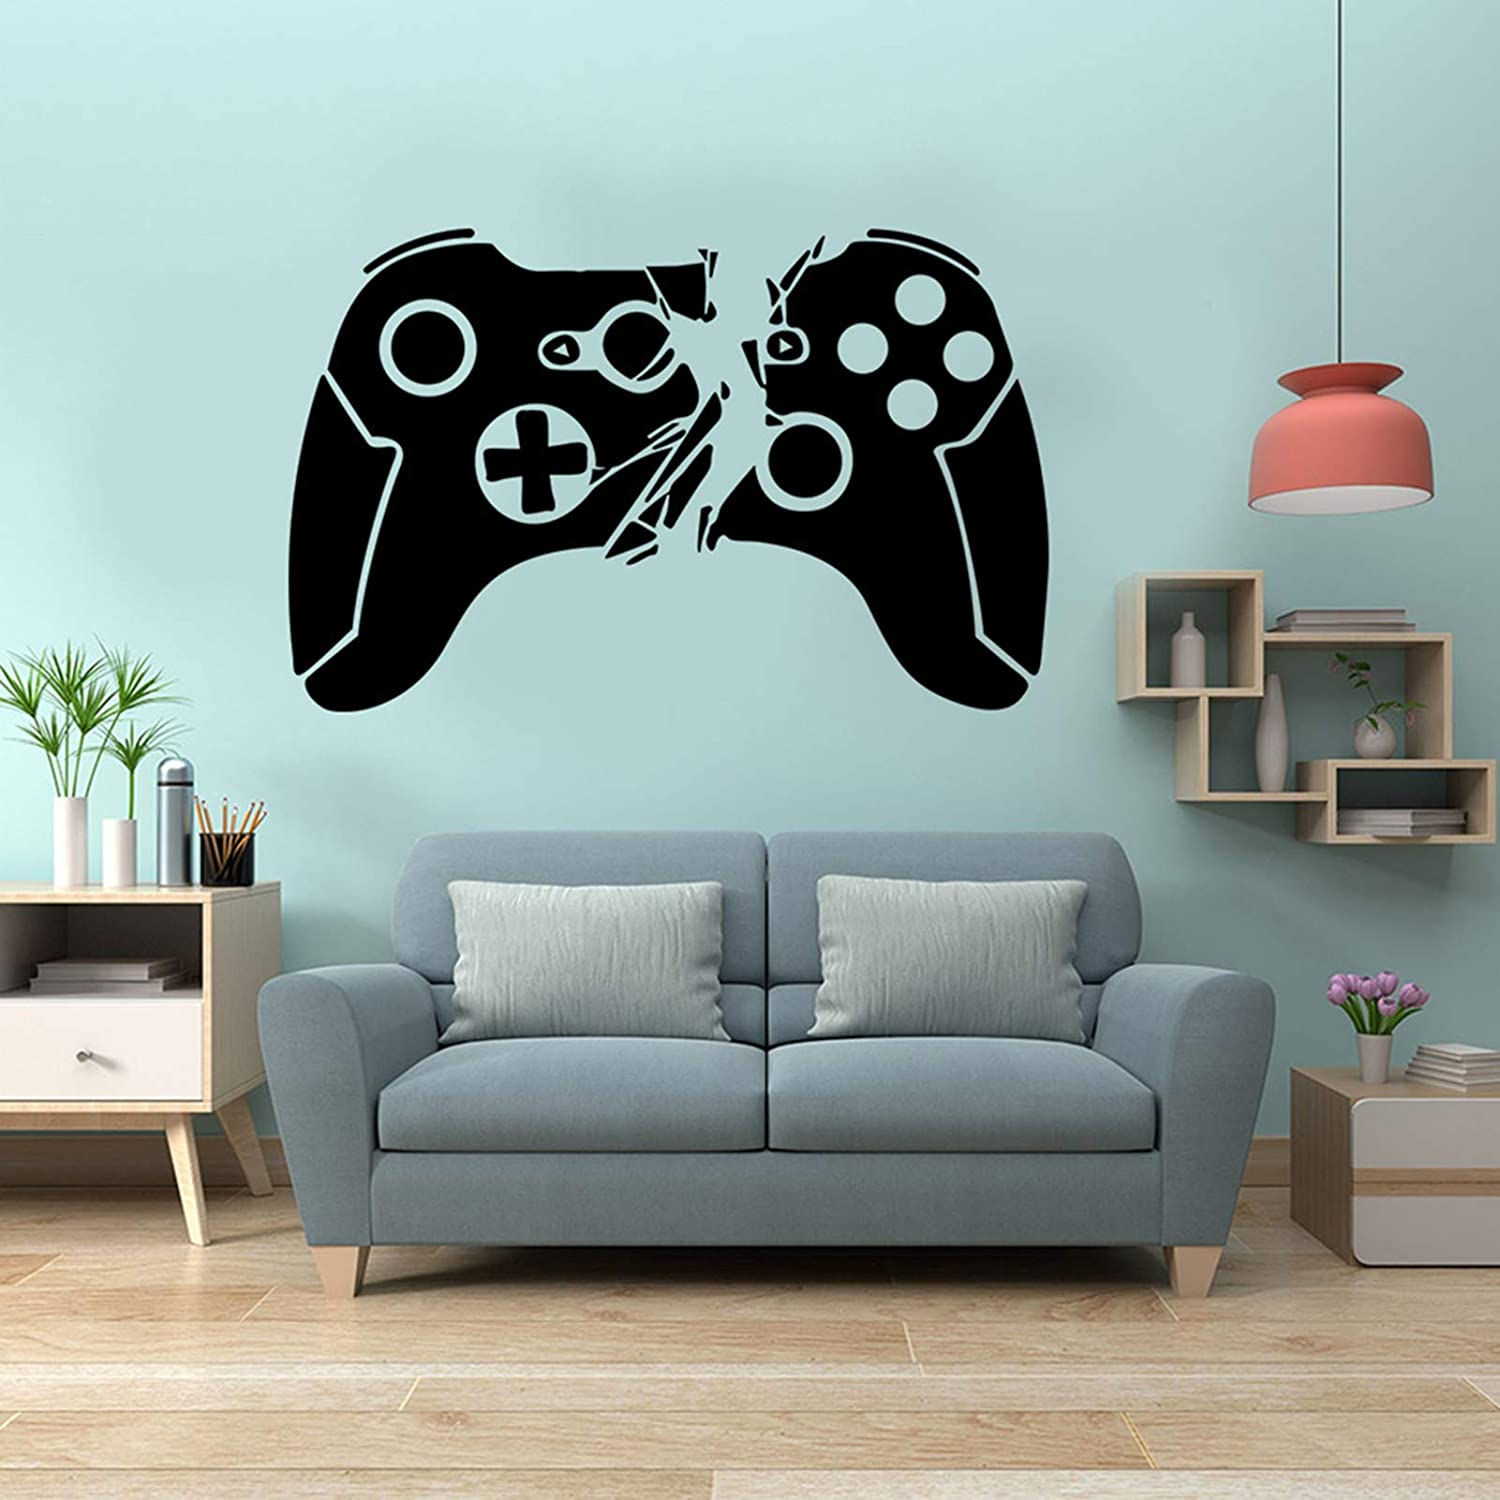 Game Controller Wall Sticker Video Game Wall Decals for Boys Kids Room Creative Gaming Wall Posters Removable Wallpaper for Bedroom Playroom